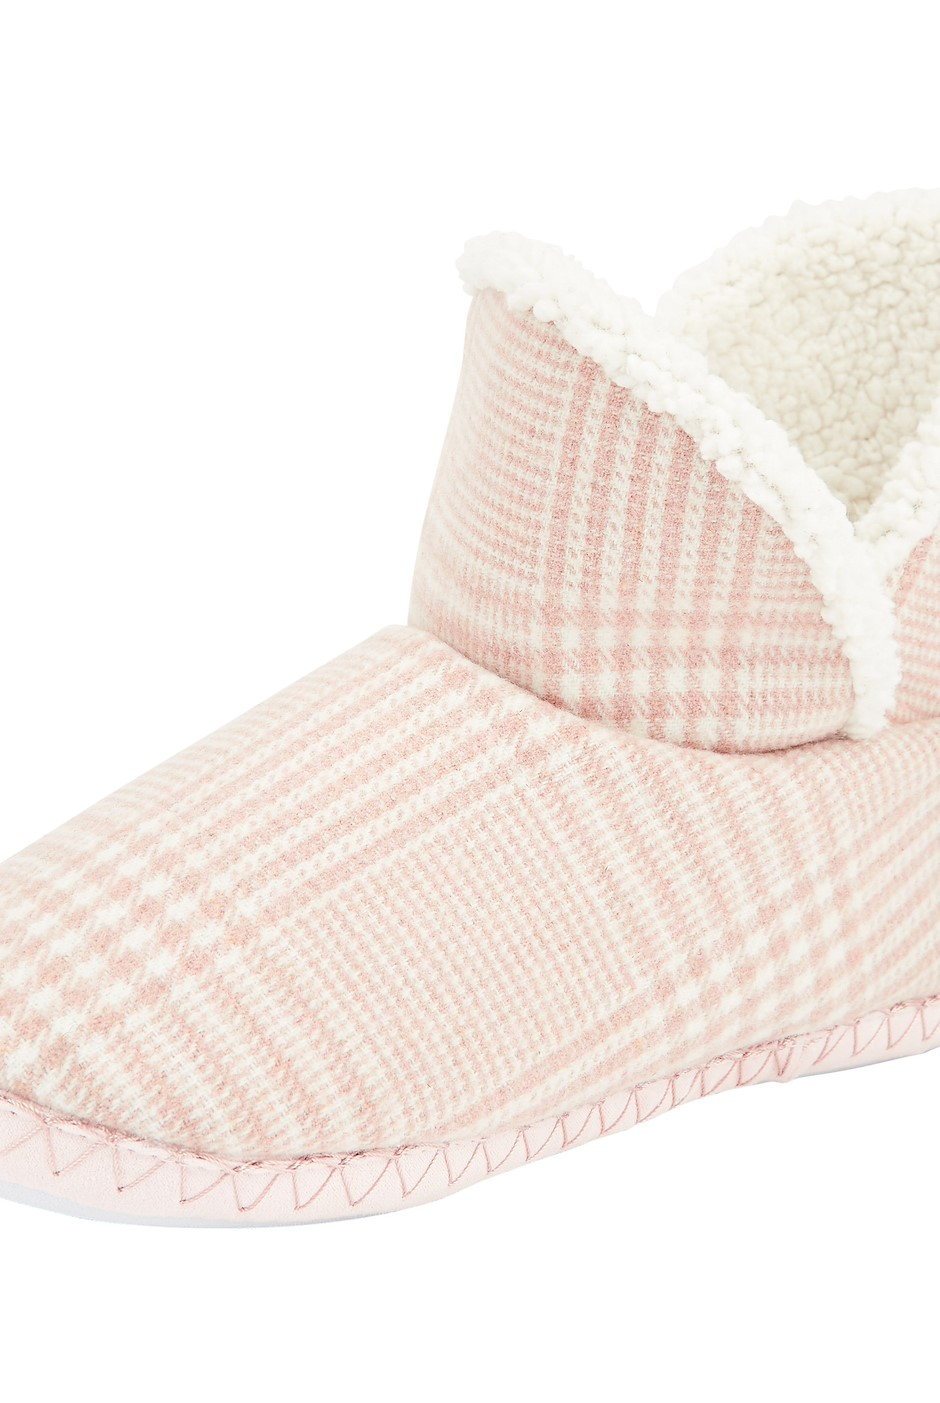 Vesta Checkered Slipper Boot Pink